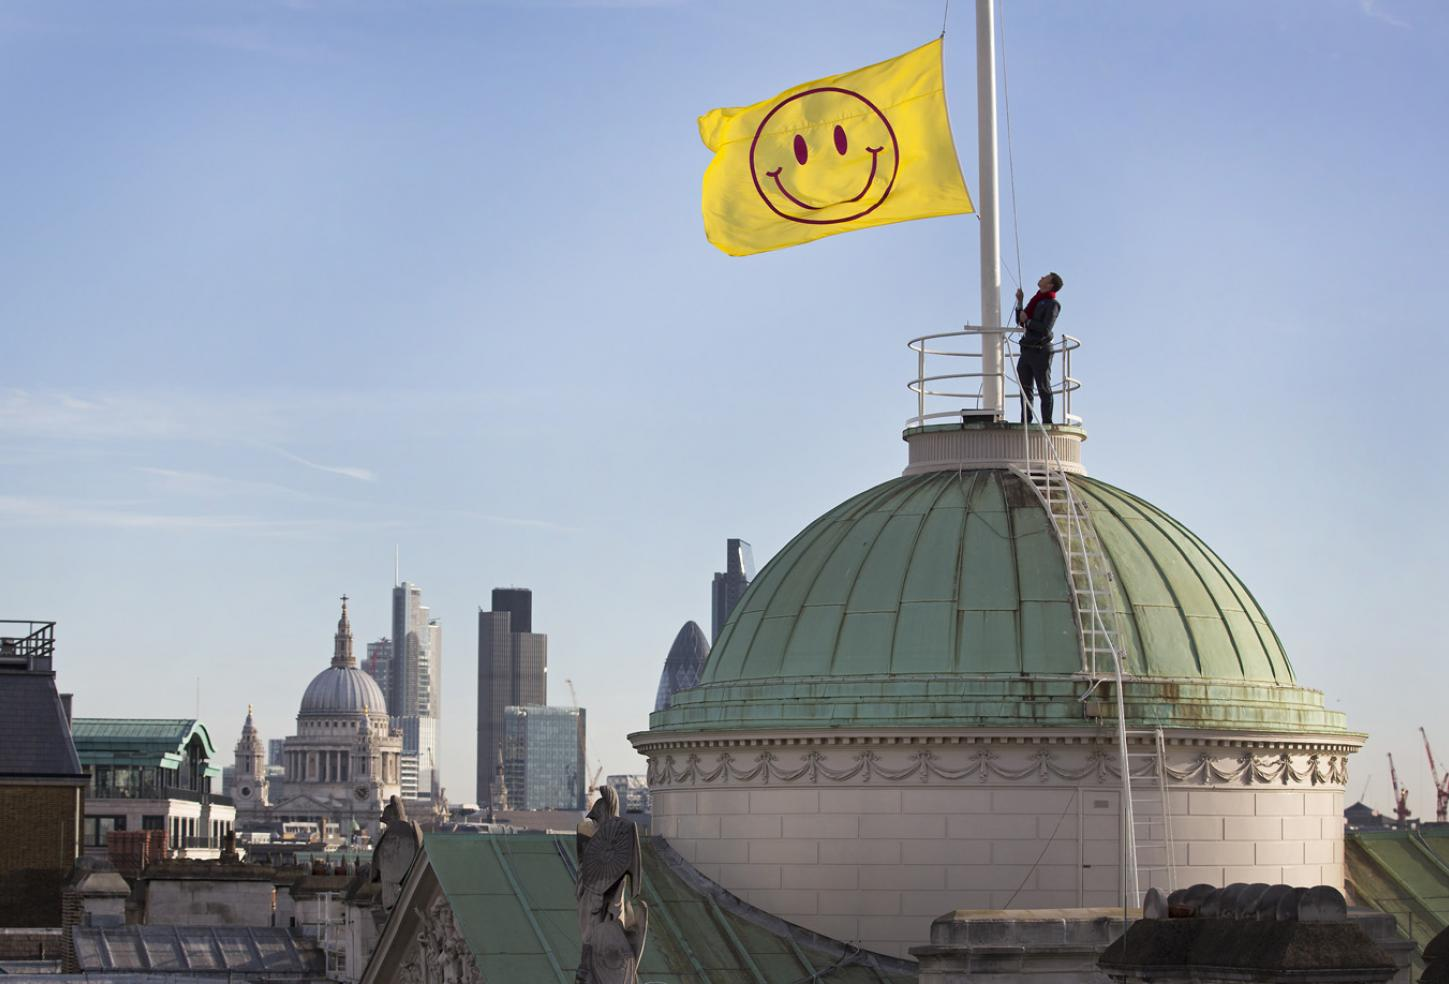 A flag designed by Jeremy Deller and Fraser Muggeridge studio is raised to the top of Somerset House as part of the launch of 'UTOPIA 2016 - A Year of Imagination and Possibility'